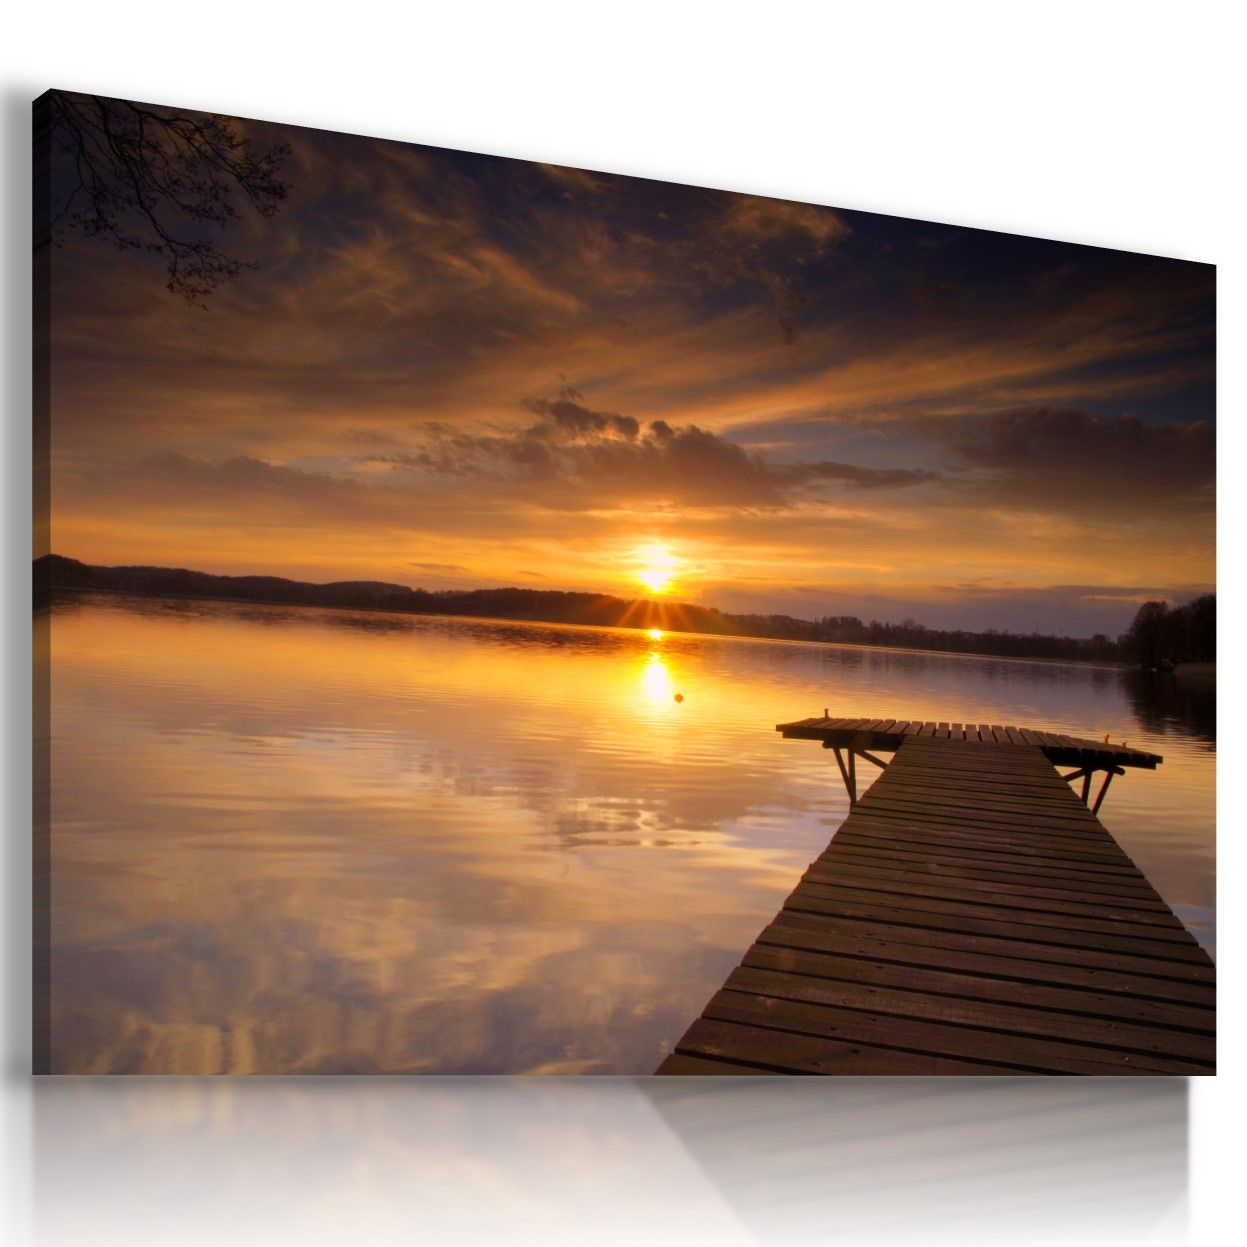 SUMMER FLOWERS SUNNY FIELDS 3D Window View Canvas Wall Art Picture W25 MATAGA